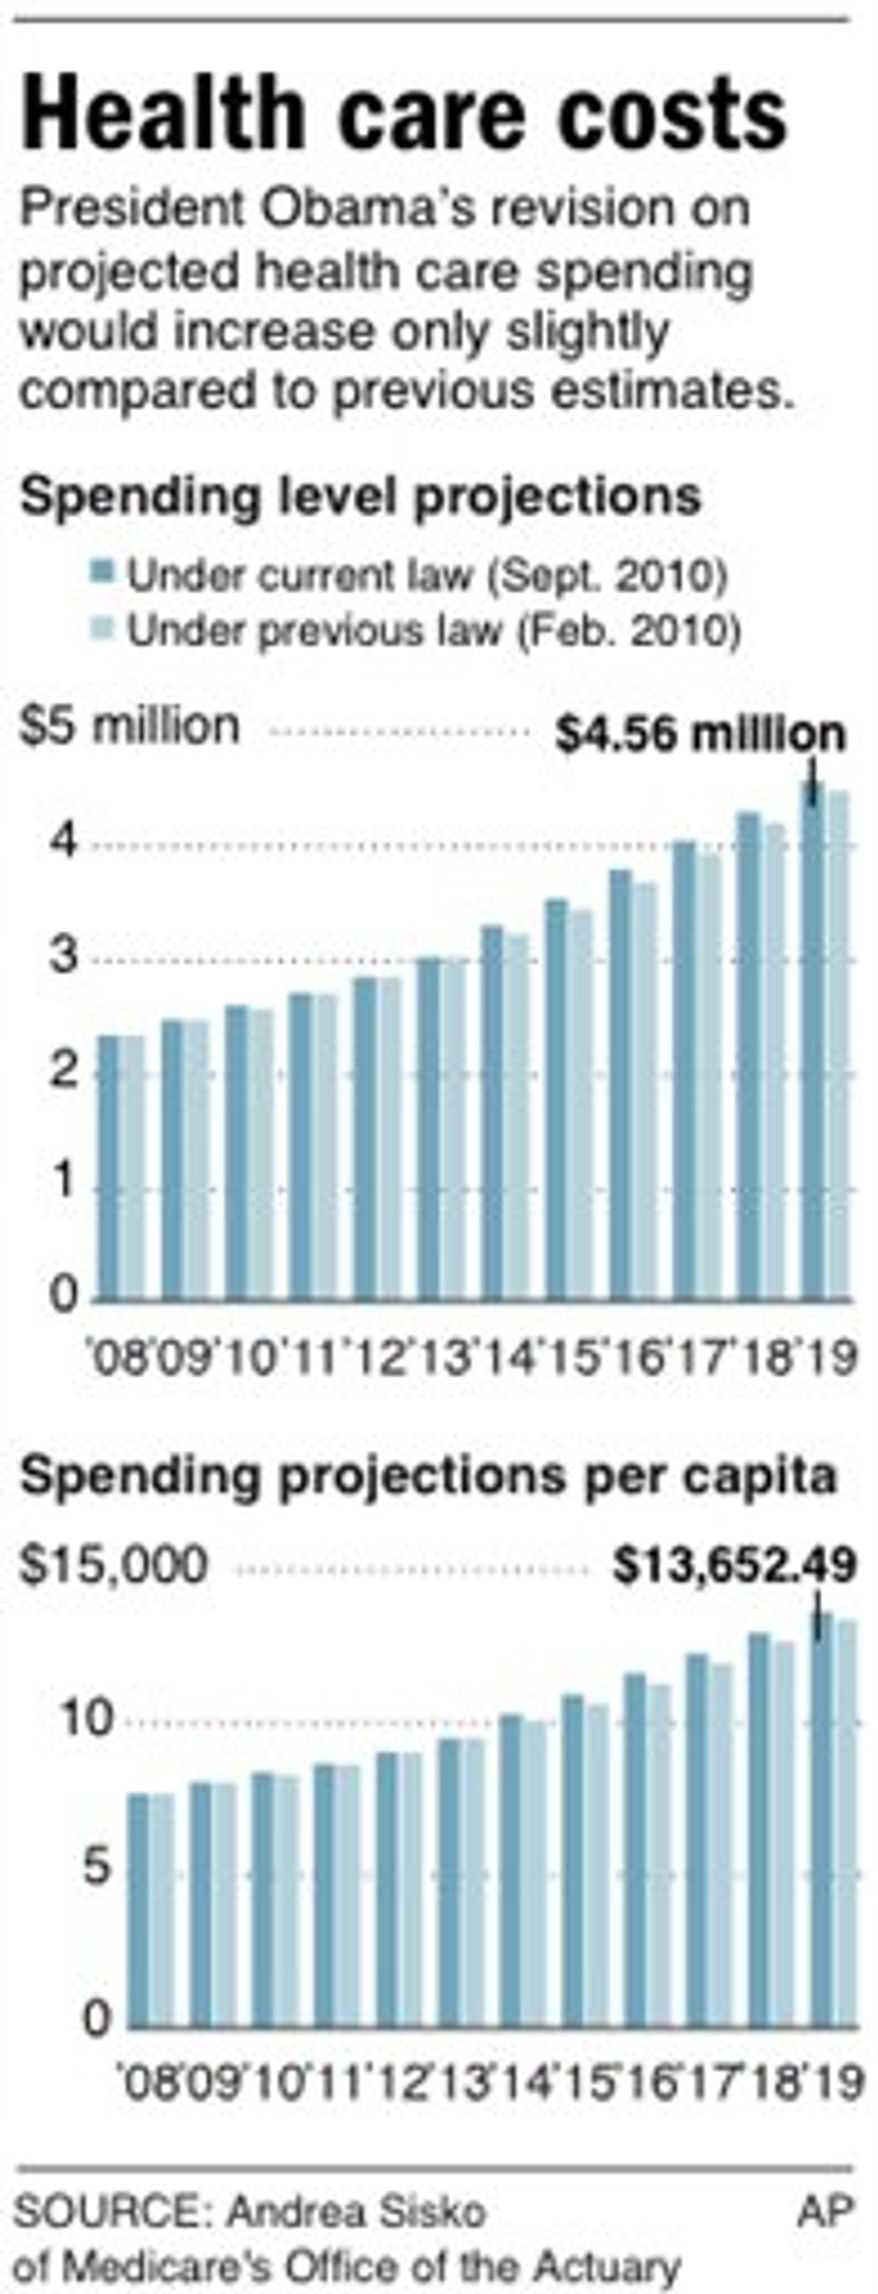 Chart shows projected health care spending comparisons between new law and previous law